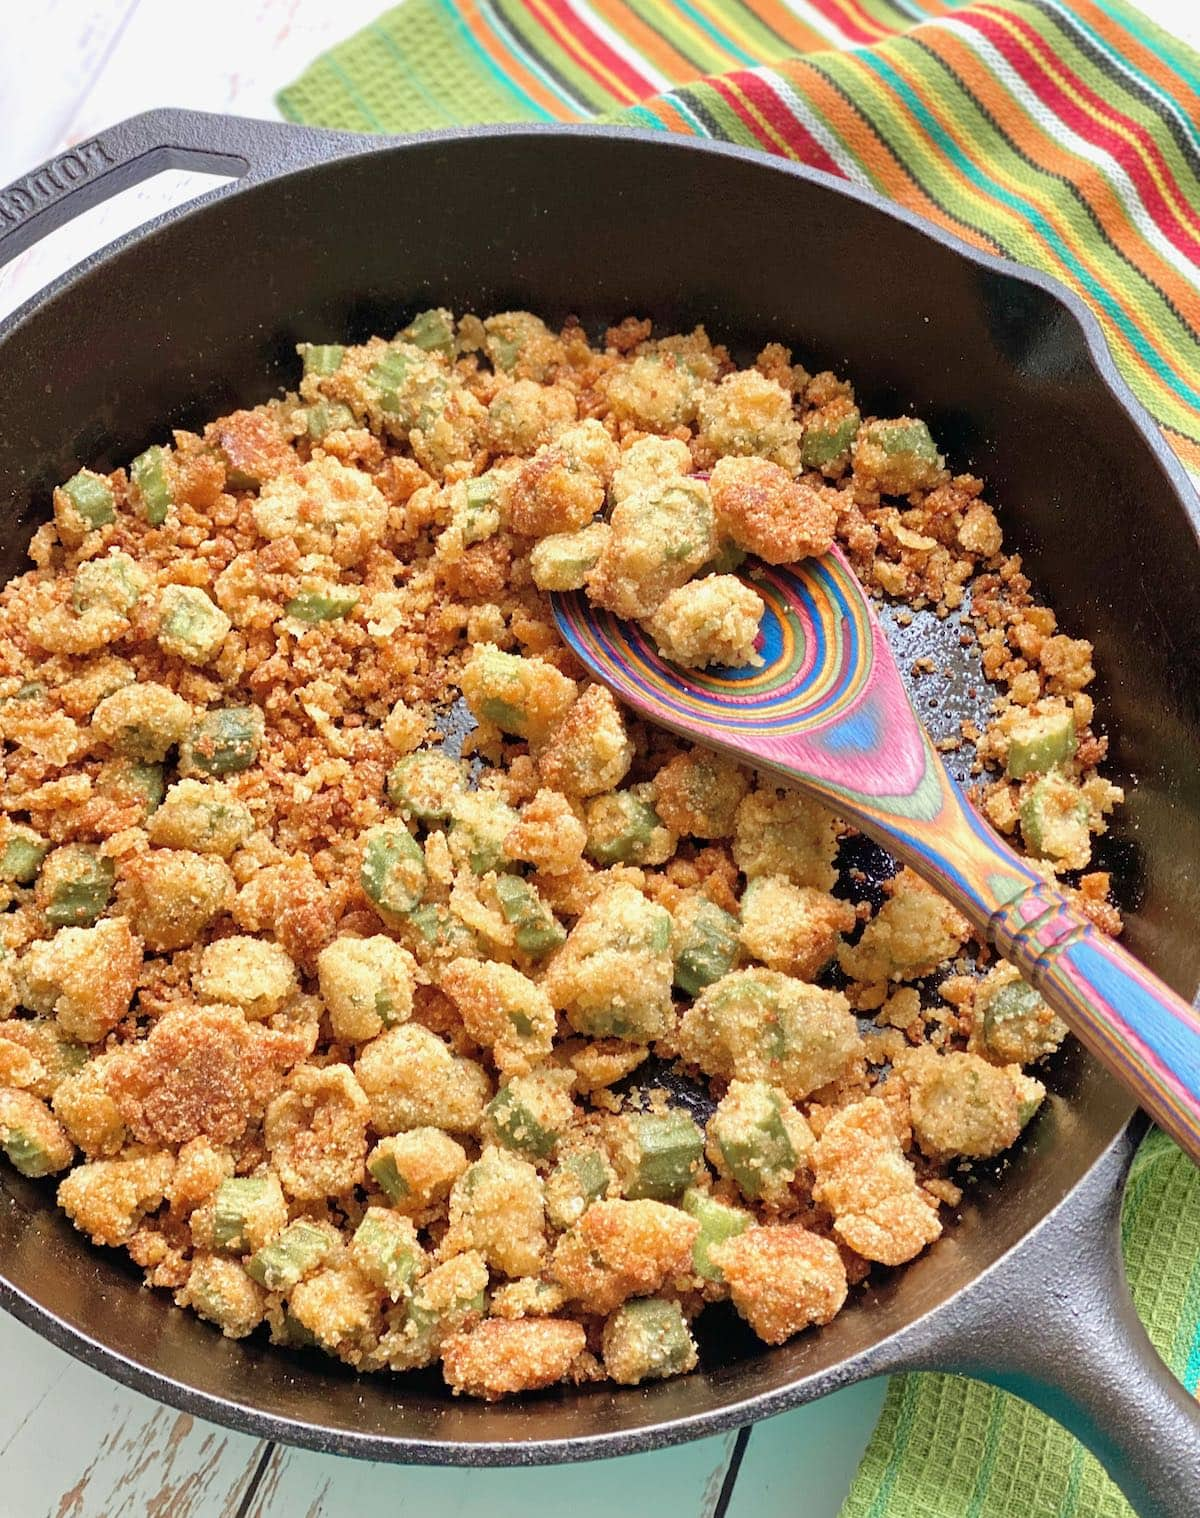 fried okra in a black cast iron skillet with a green towel in background.